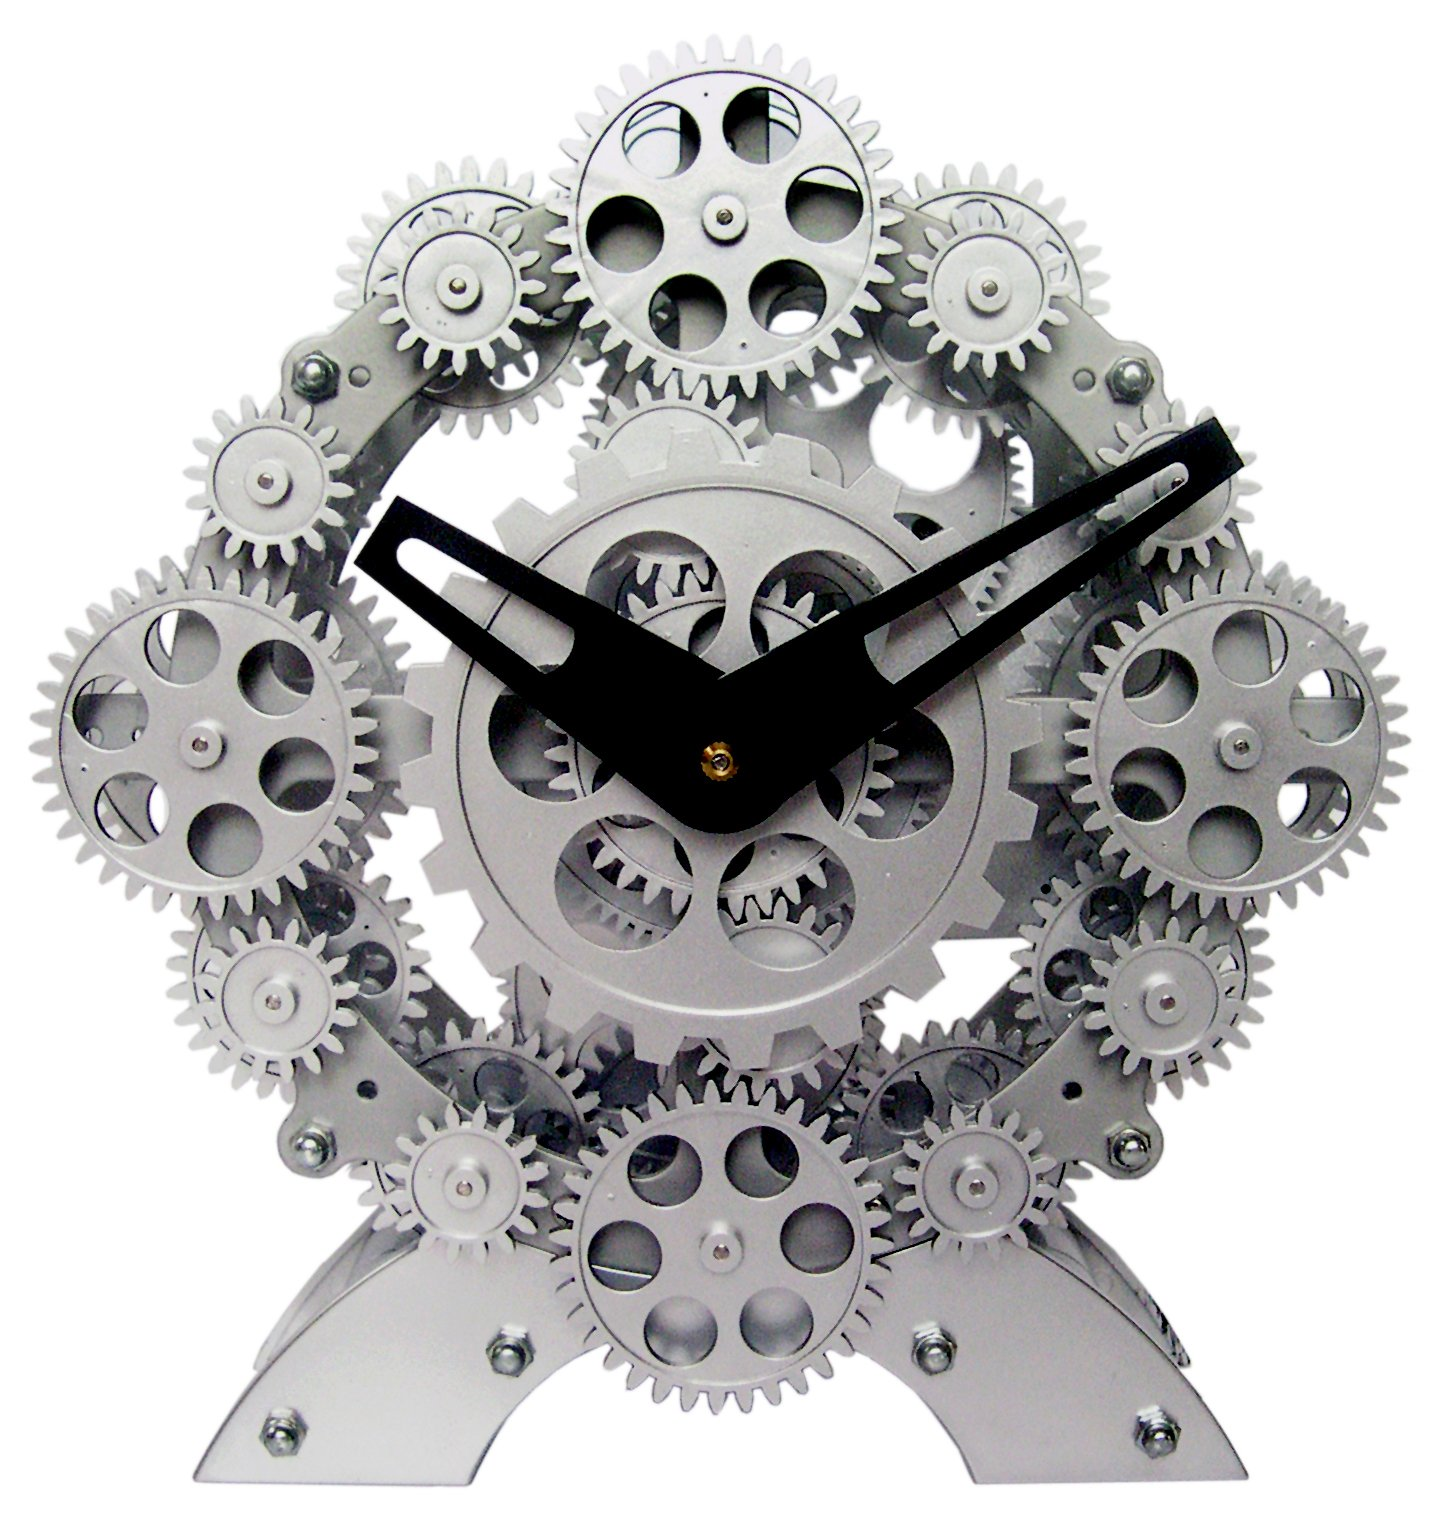 Maple's Moving Gear Table Clock, Numerous Gears - Gear Movement is Independent of Time Keeping Function Numerous Moving Gears on the Ring Dial Create a Pleasing Effect Precision Quartz Movement - clocks, bedroom-decor, bedroom - 81Qv8jcqtwL -